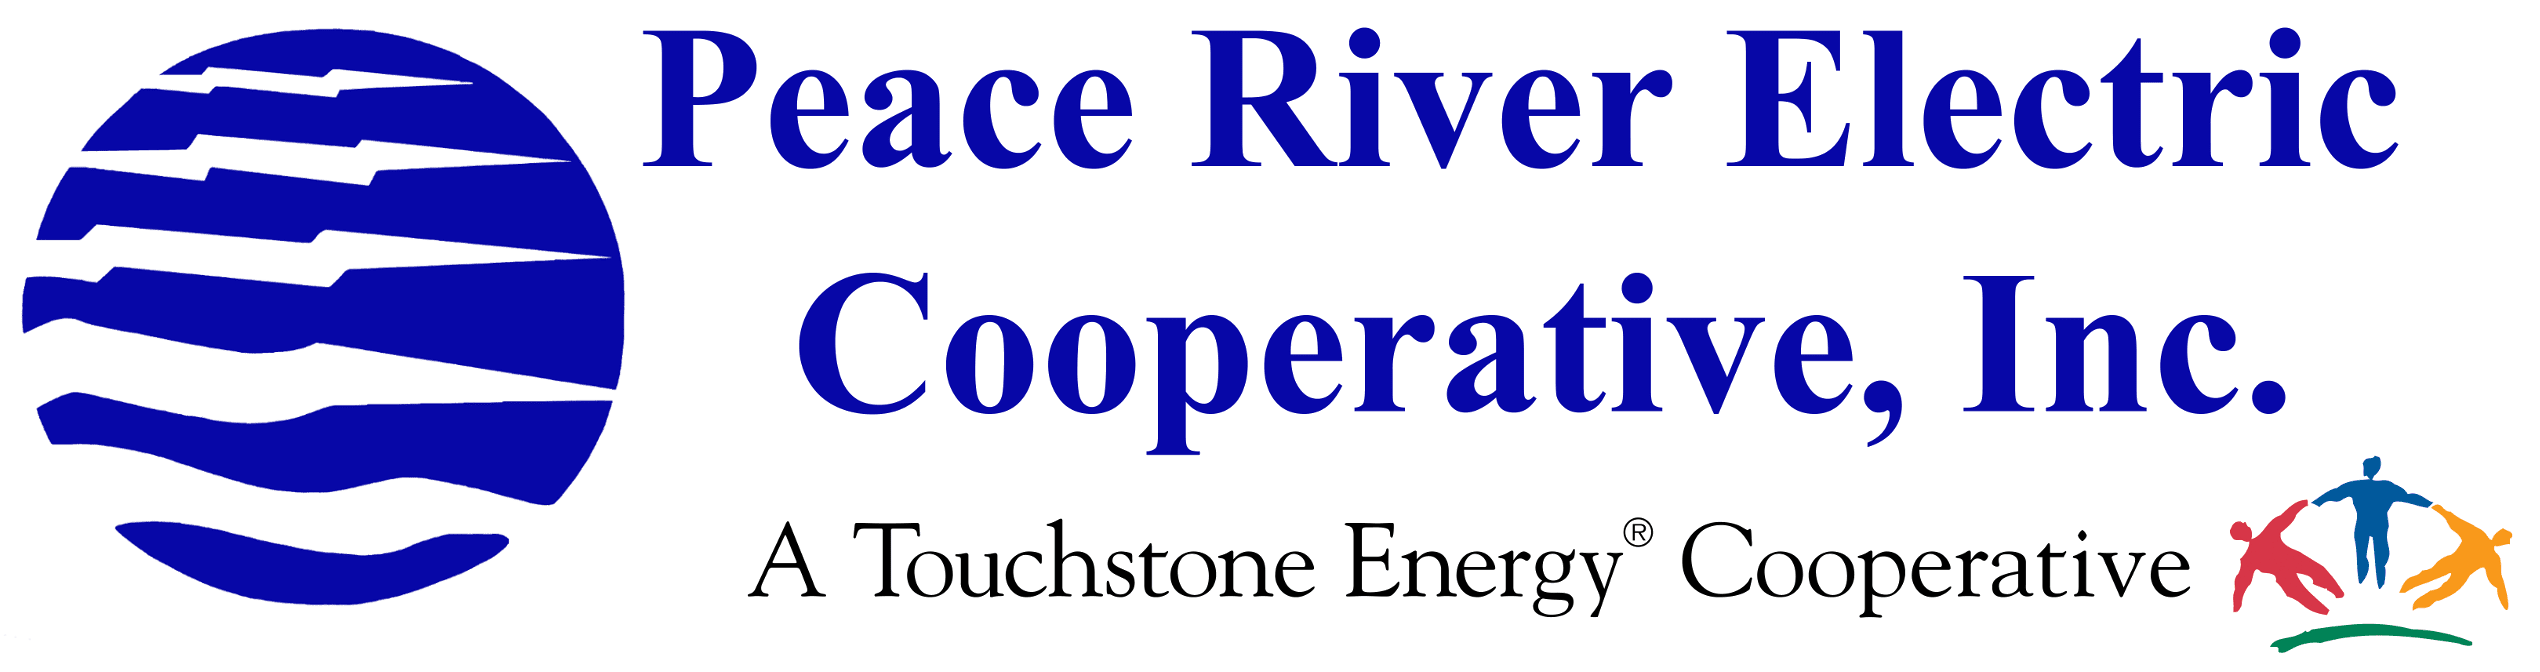 Peace River Electric Cooperative logo